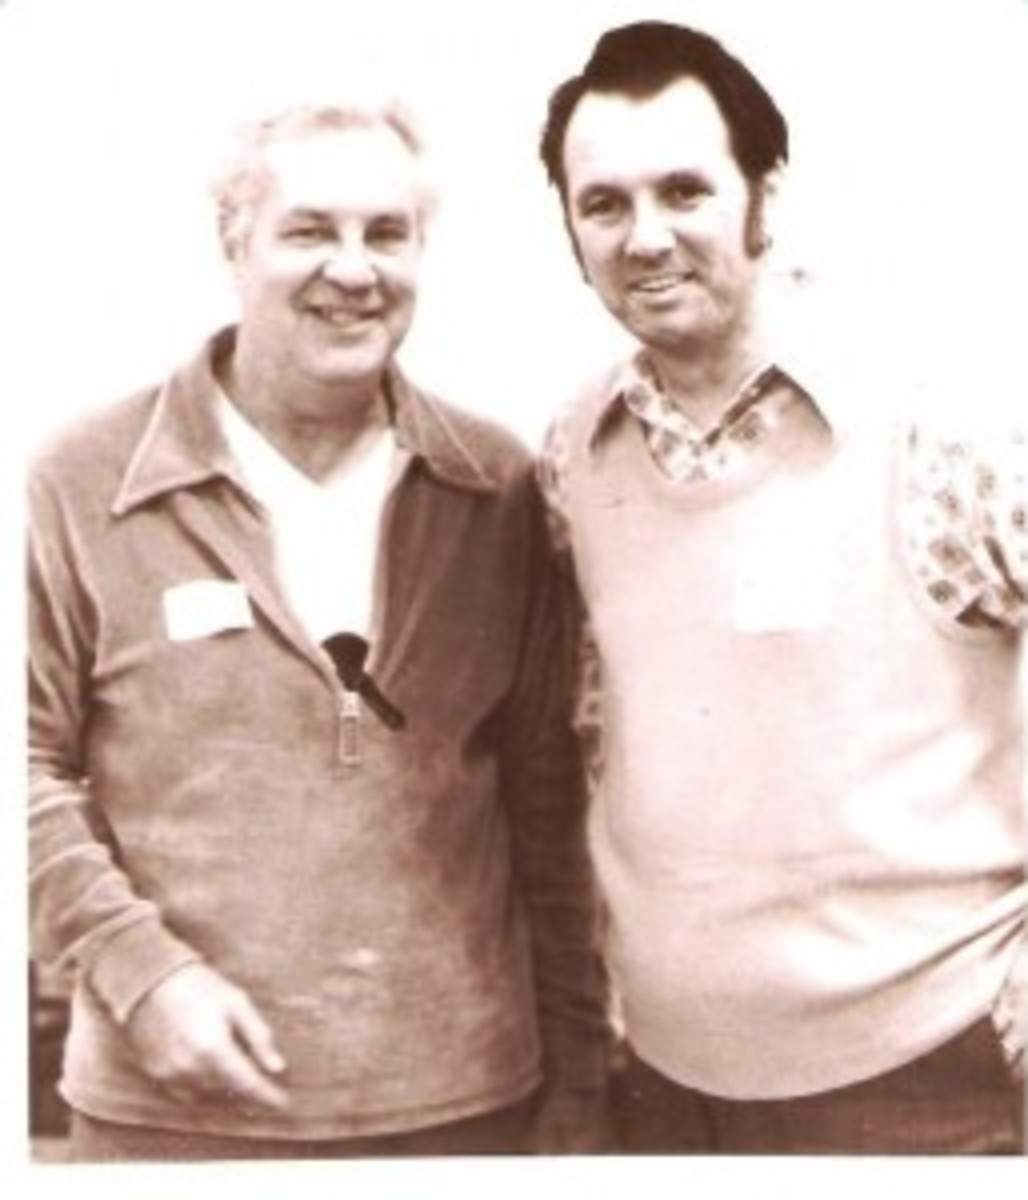 The Rays – Hess, left, and his friend Ray Medeiros, right, 1973.